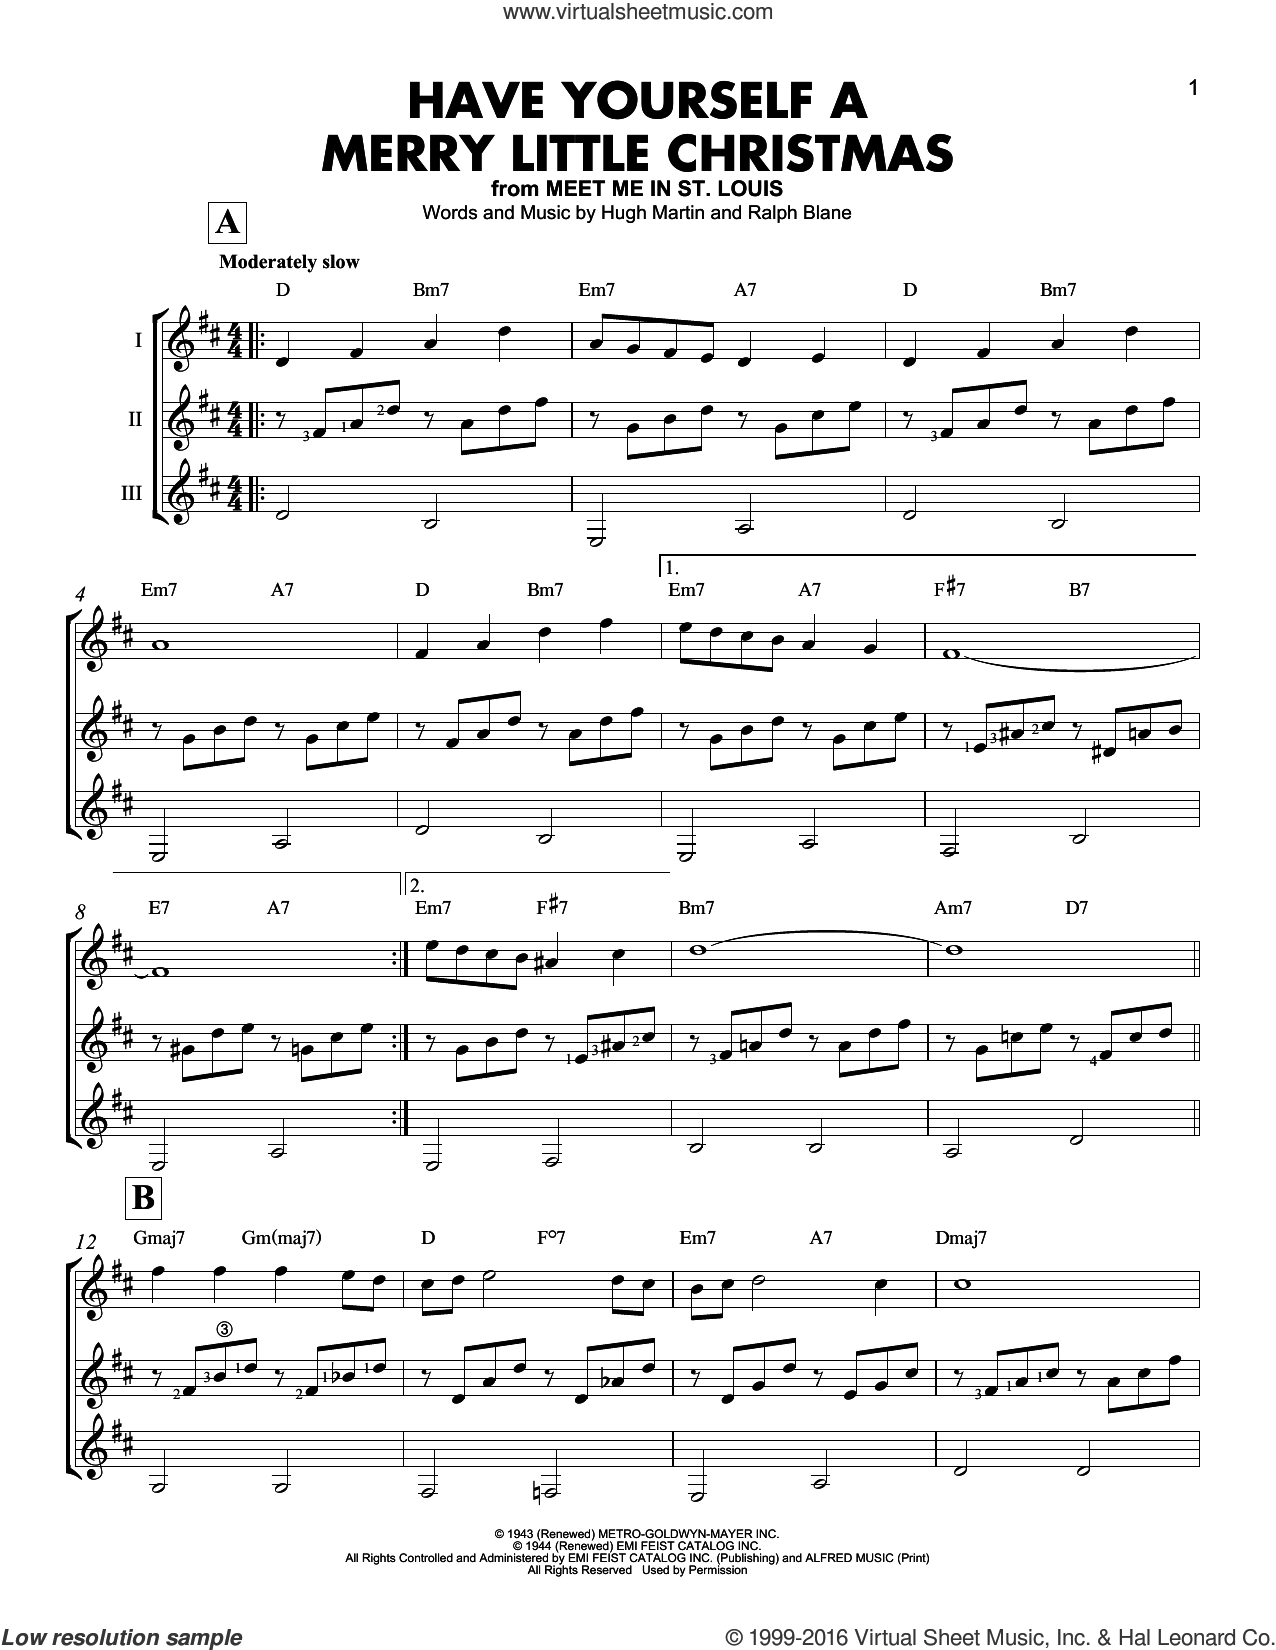 Have Yourself A Merry Little Christmas sheet music for guitar ensemble by Hugh Martin and Ralph Blane. Score Image Preview.